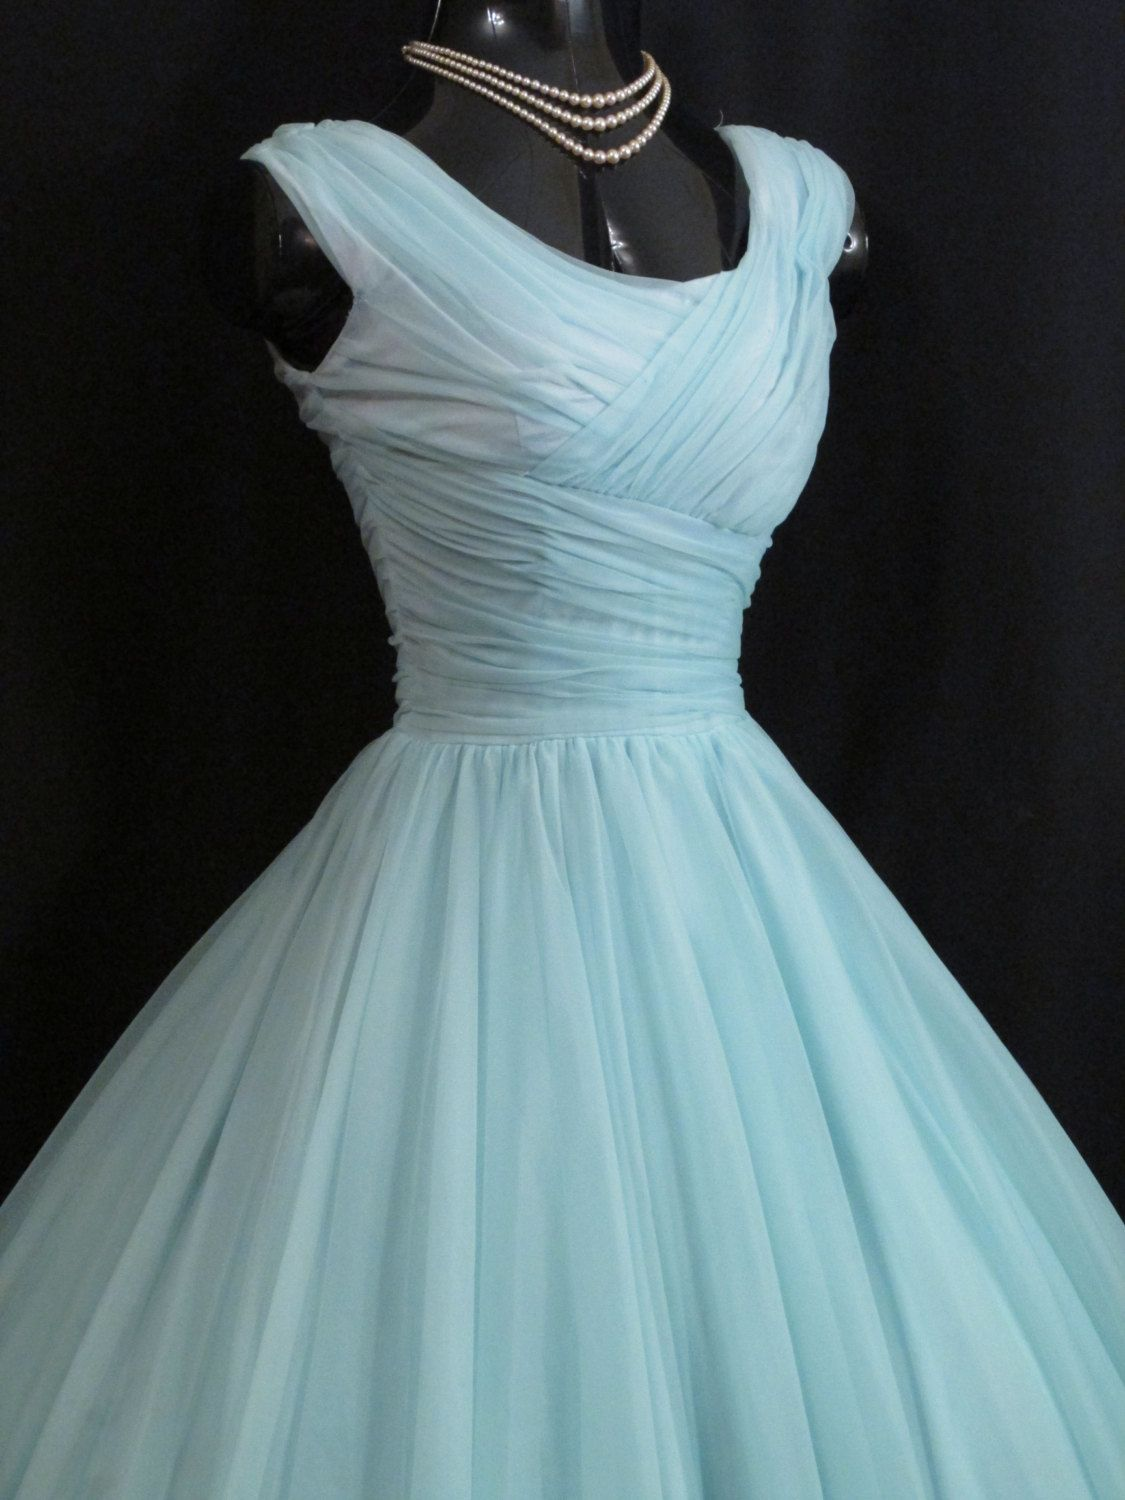 Vintage us s turquoise blue ruched chiffon organza party prom